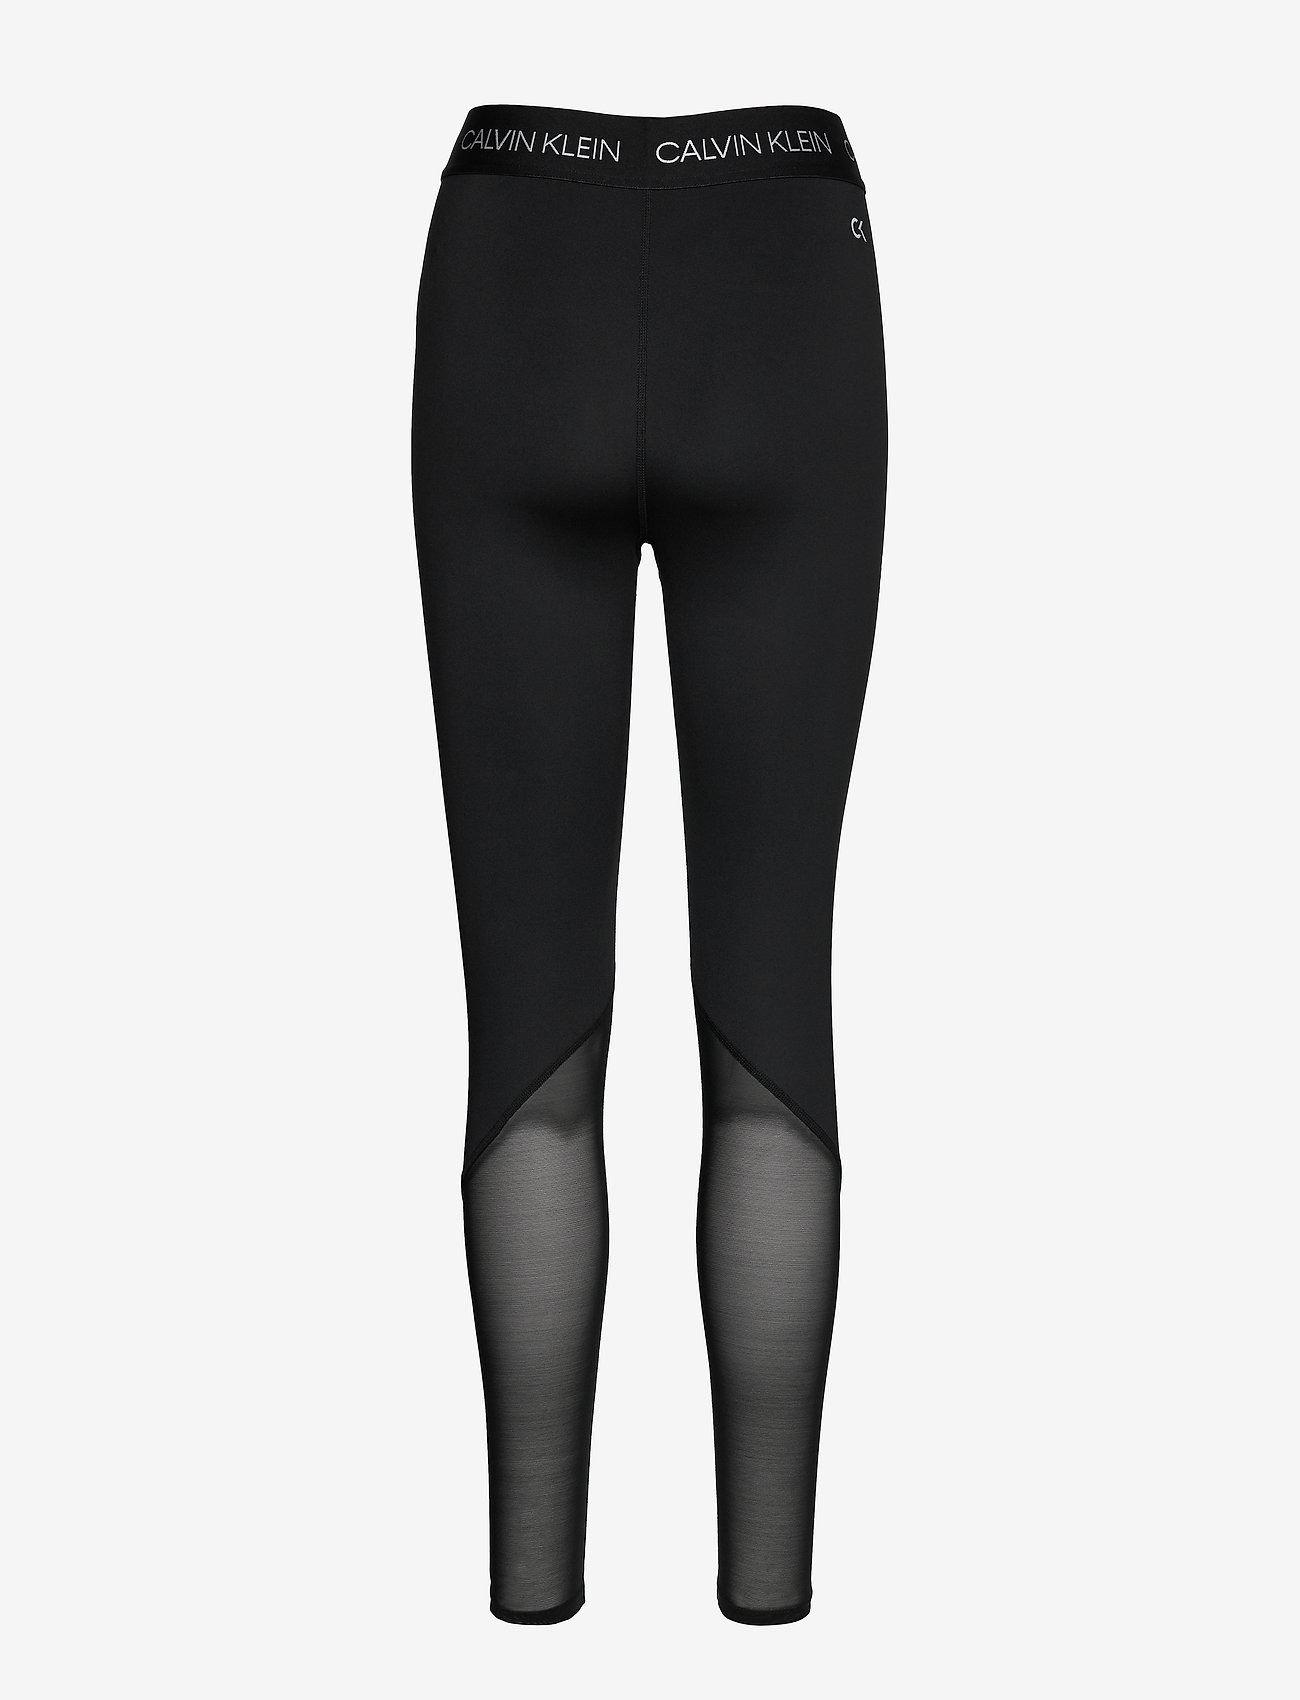 Calvin Klein Performance - 7/8 TIGHT - running & training tights - ck black - 1